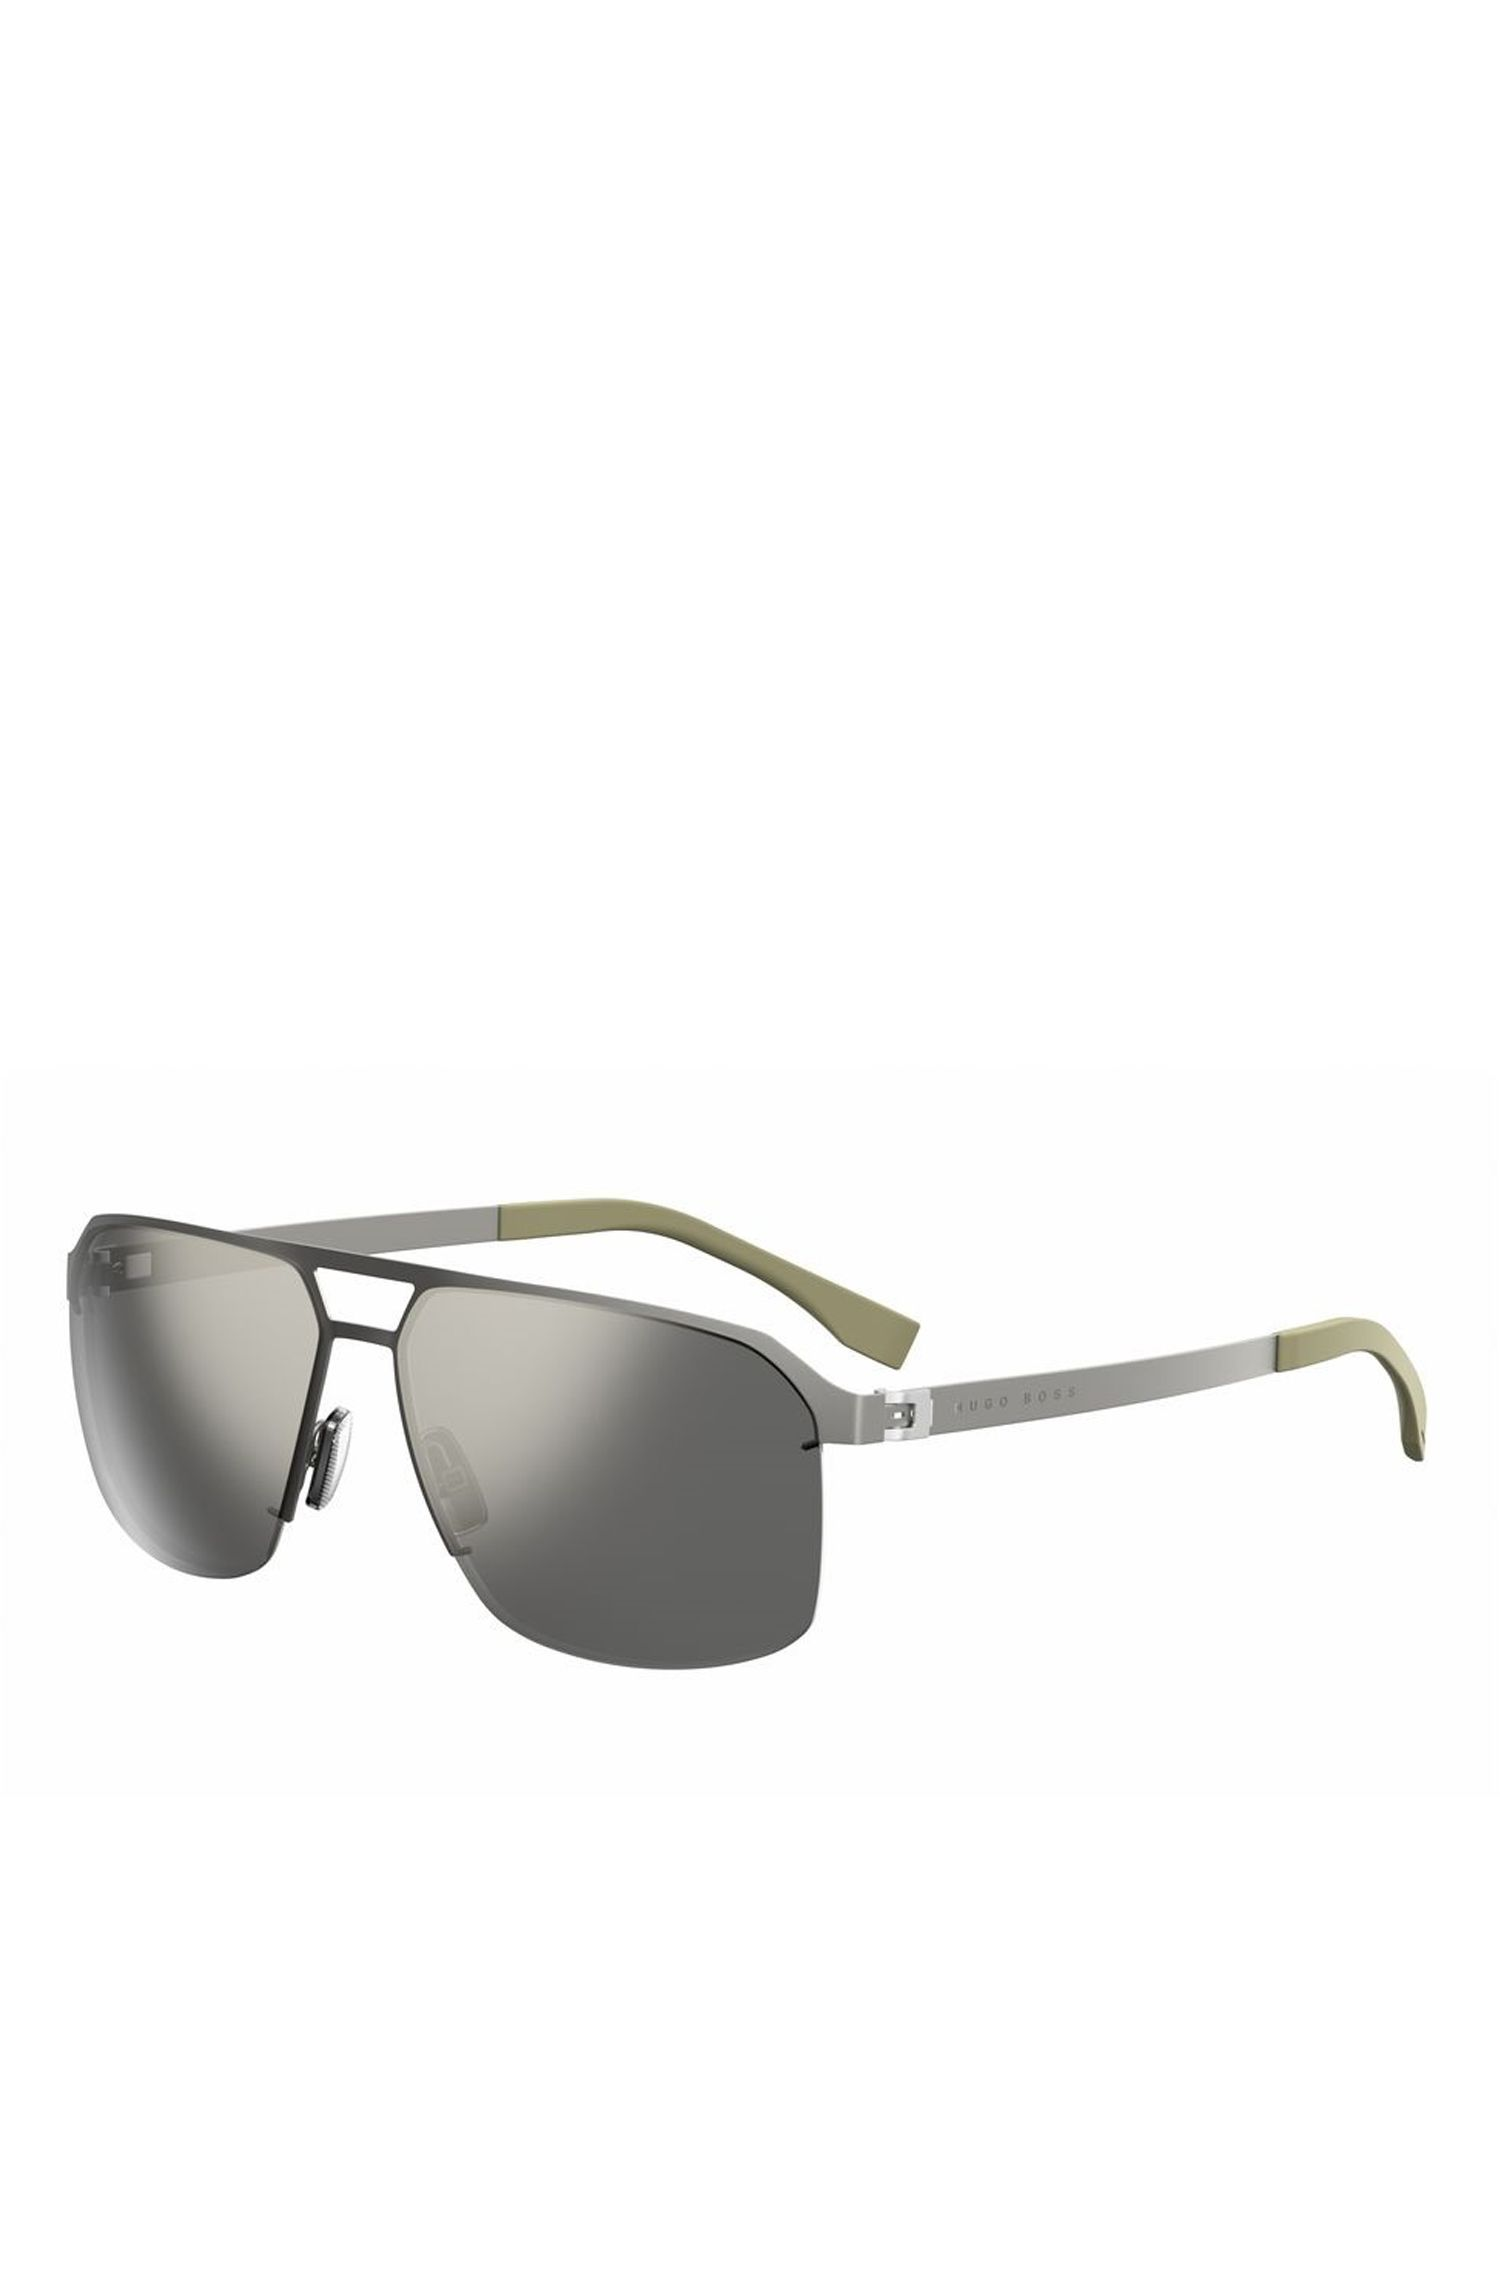 Navigator Flat Metal Sunglasses | BOSS 0839S